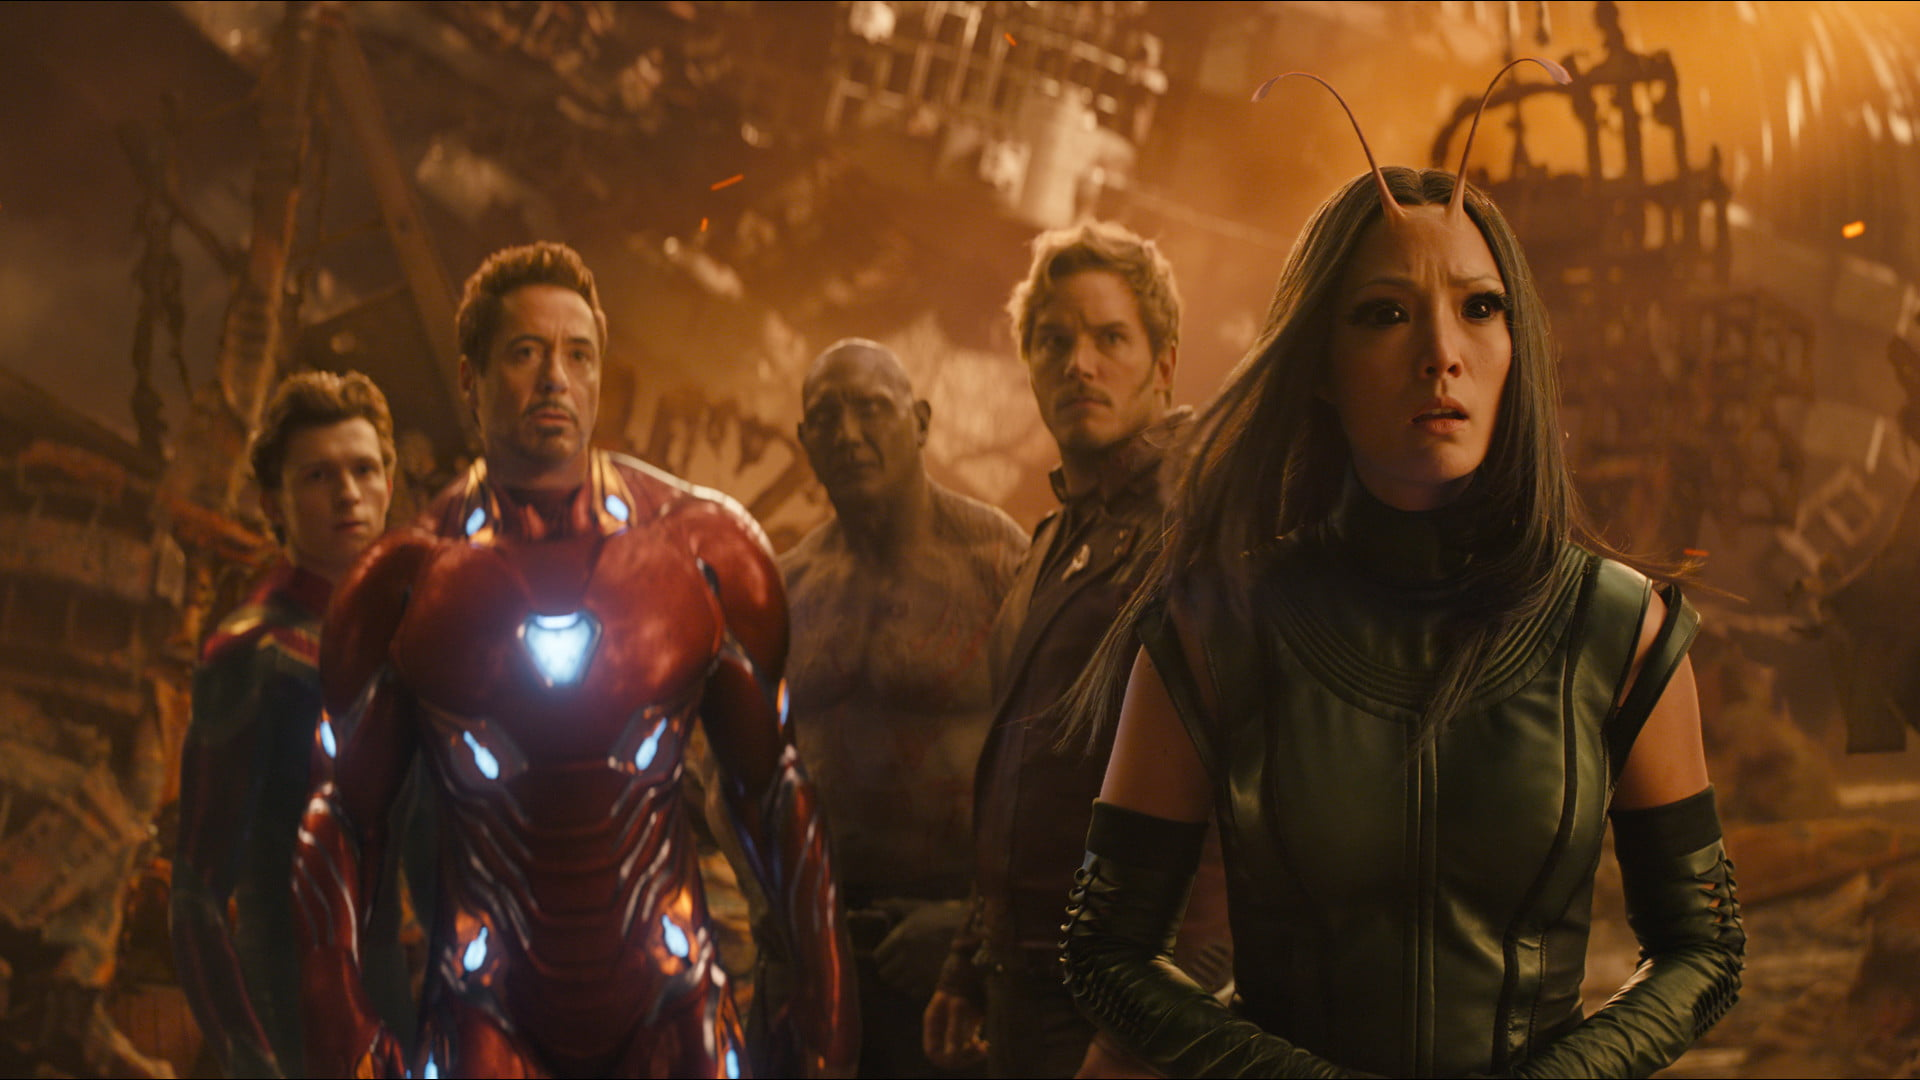 'Avengers: Infinity War' is an epic Marvel mashup well worth the 10-year wait